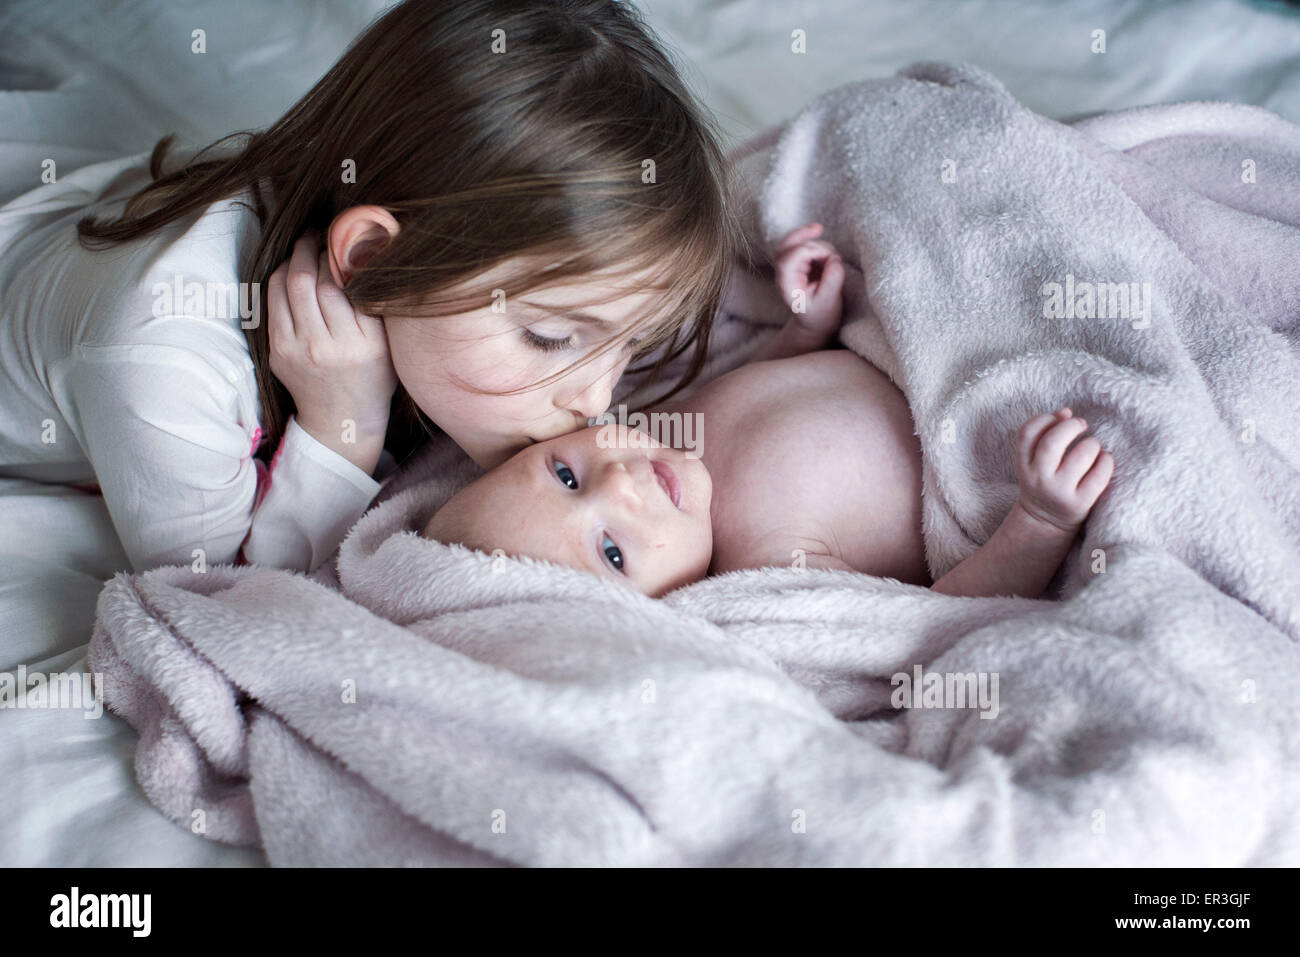 Little girl kissing baby brother's cheek on bed Stock Photo